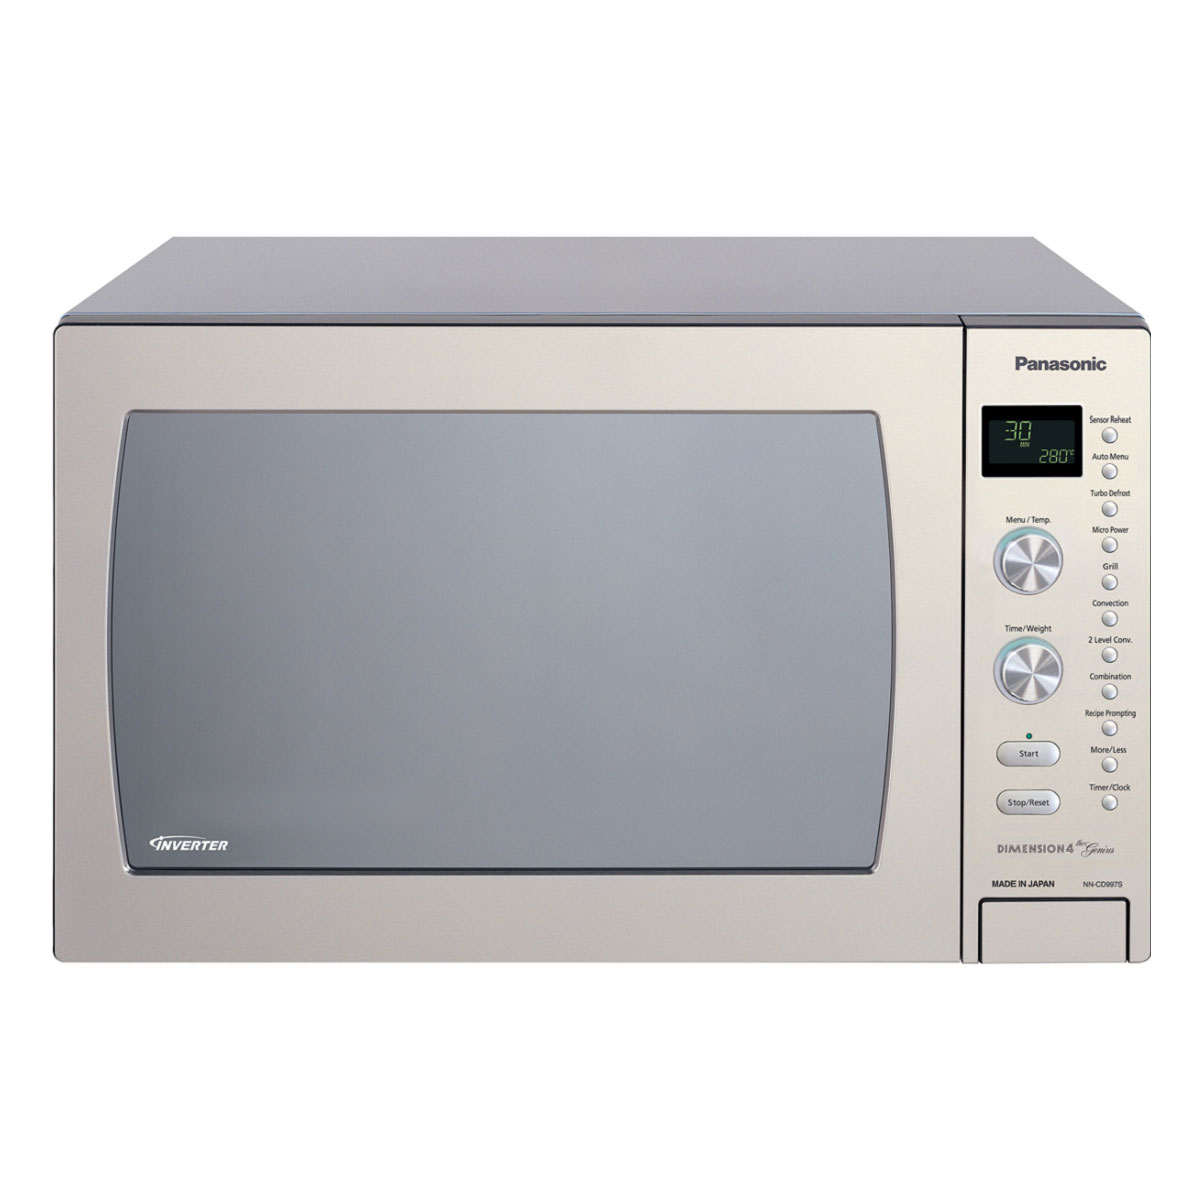 Panasonic Convection Microwave Convection Microwaves Home Clearance Appliances Online